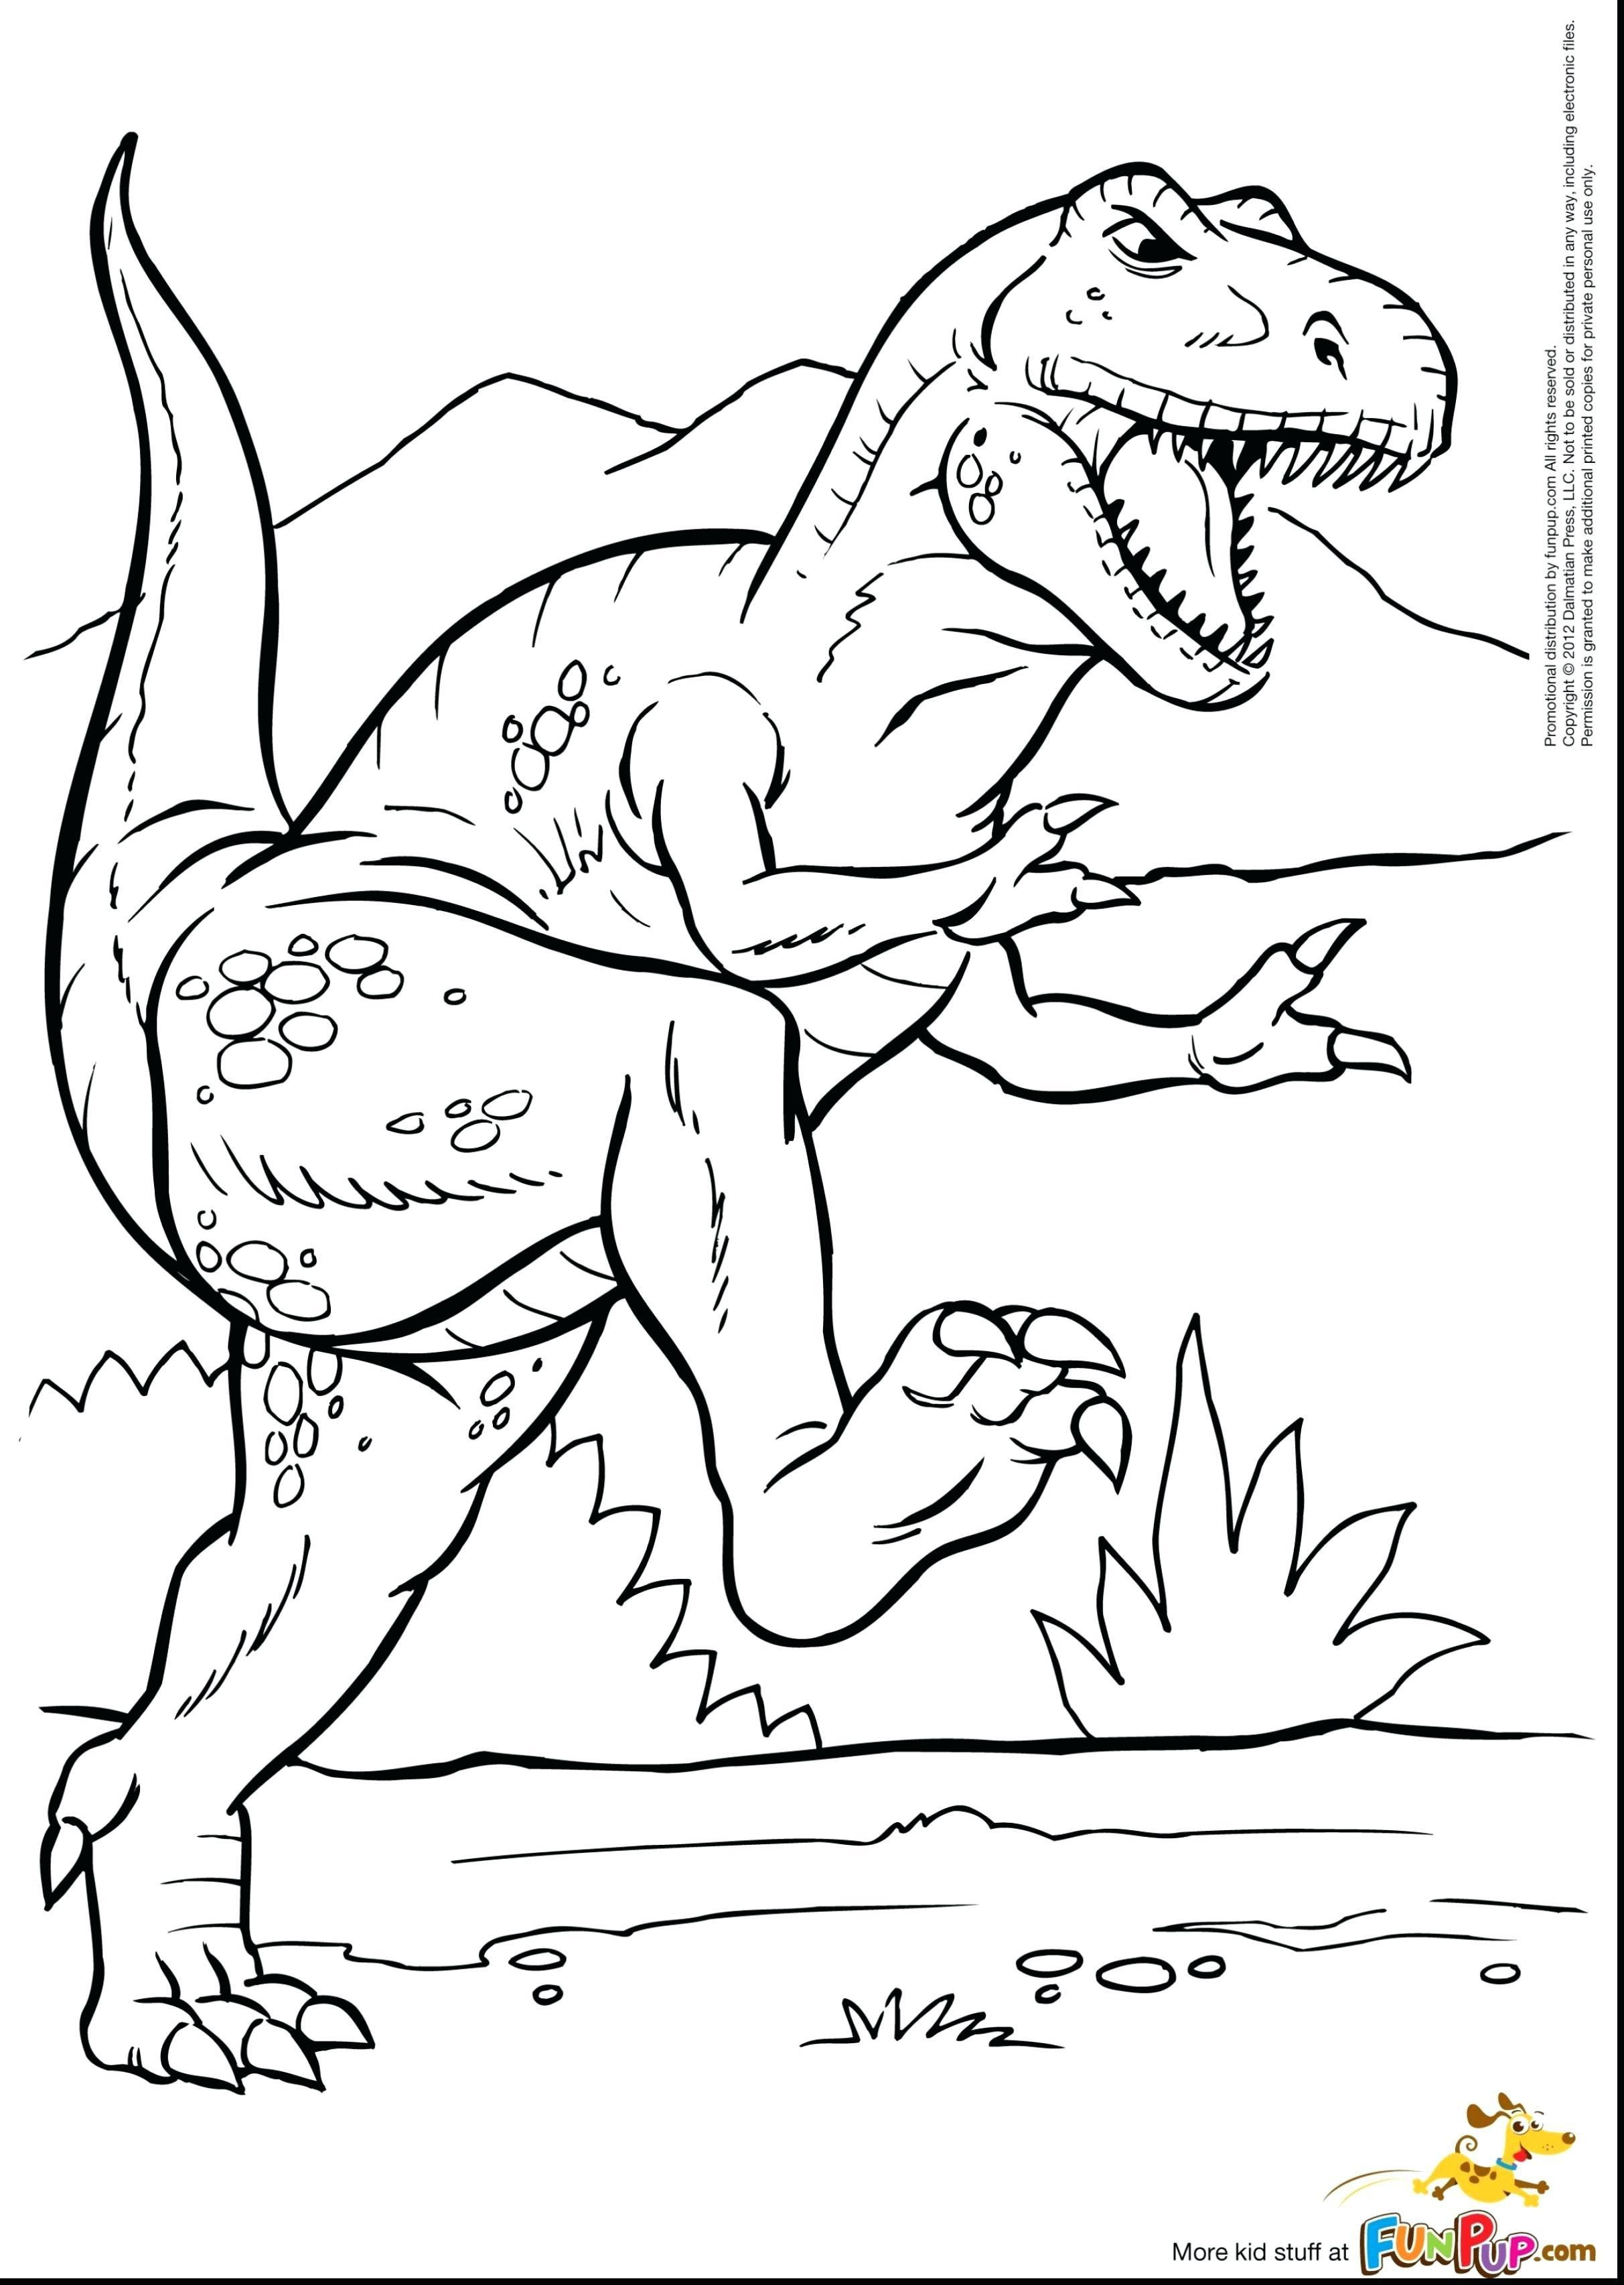 Lego T Rex Coloring Pages